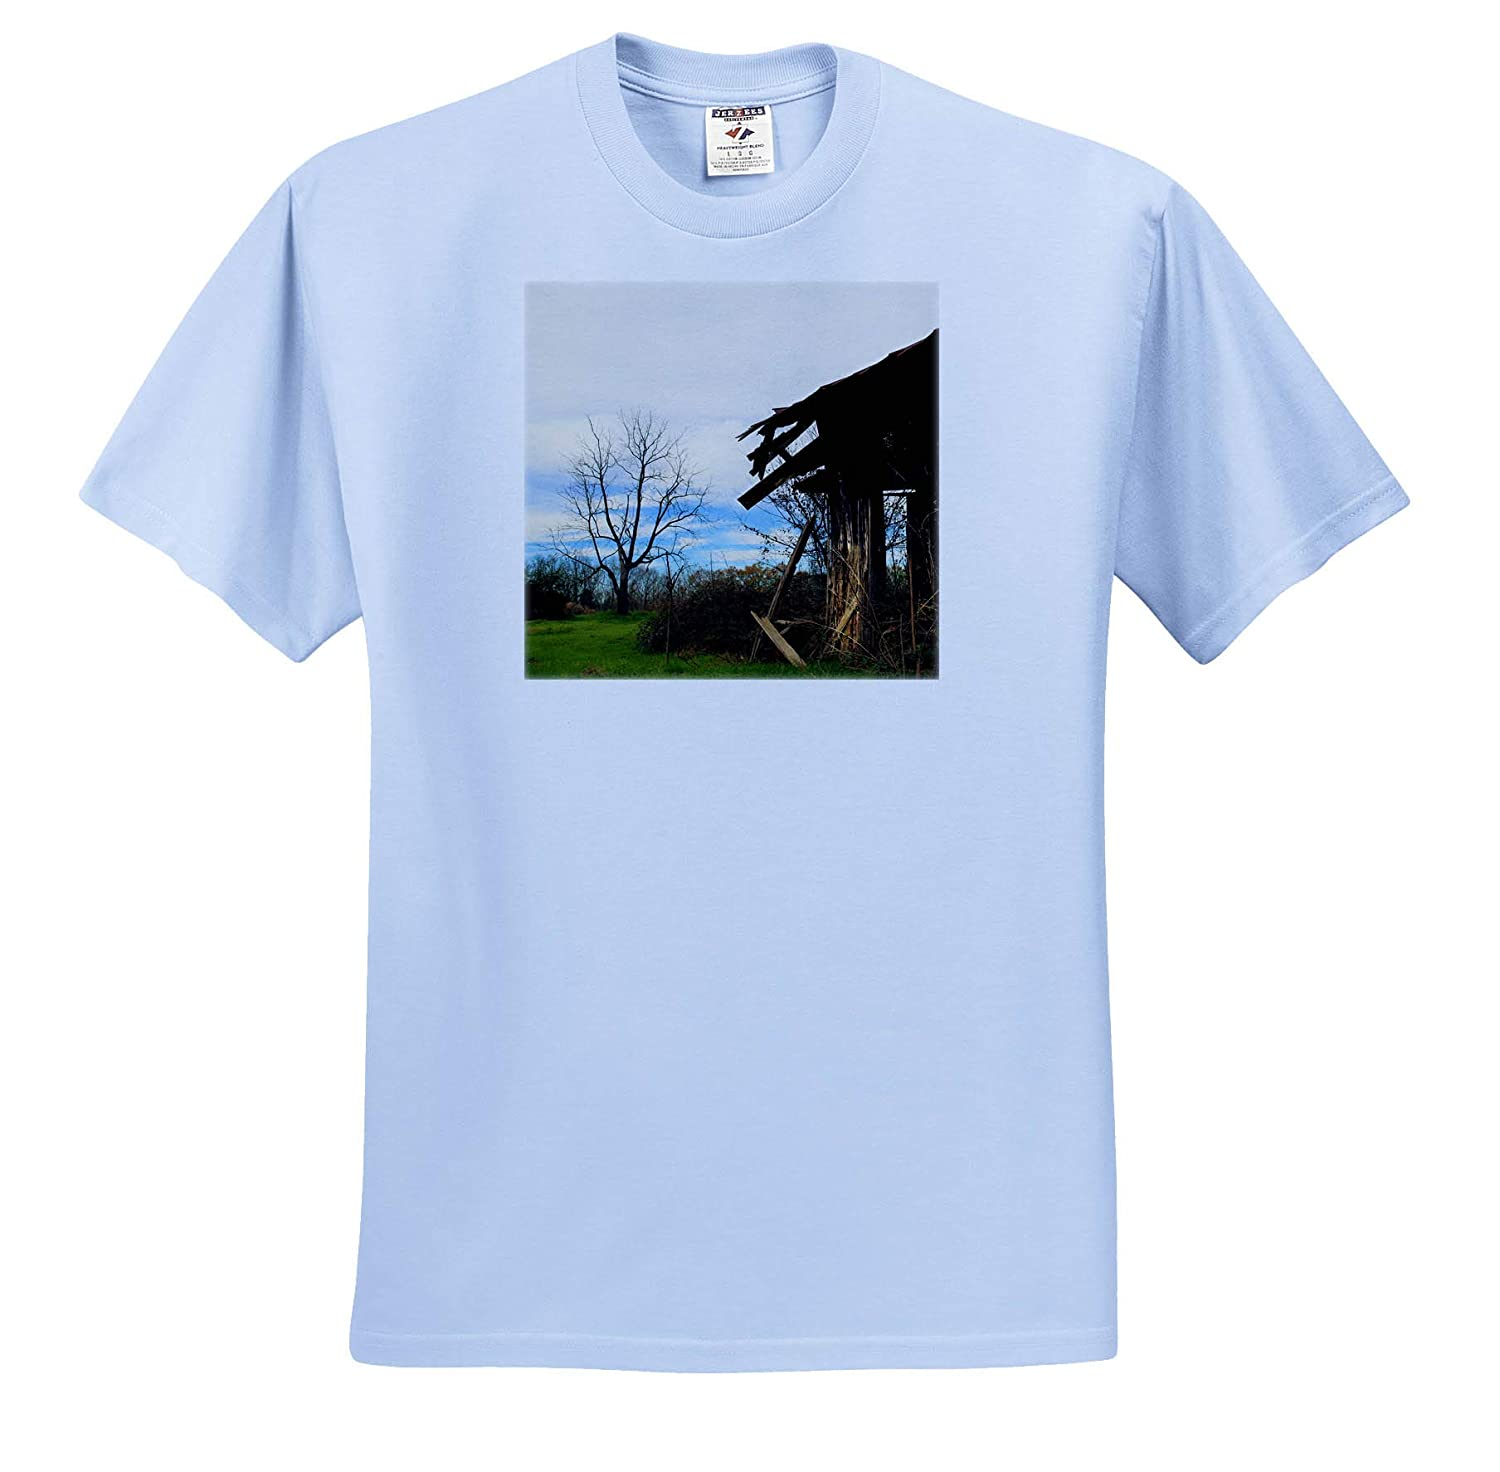 3dRose Stamp City - Adult T-Shirt XL Architecture Photograph of a Deserted barn on a Farm in South Carolina ts/_309910